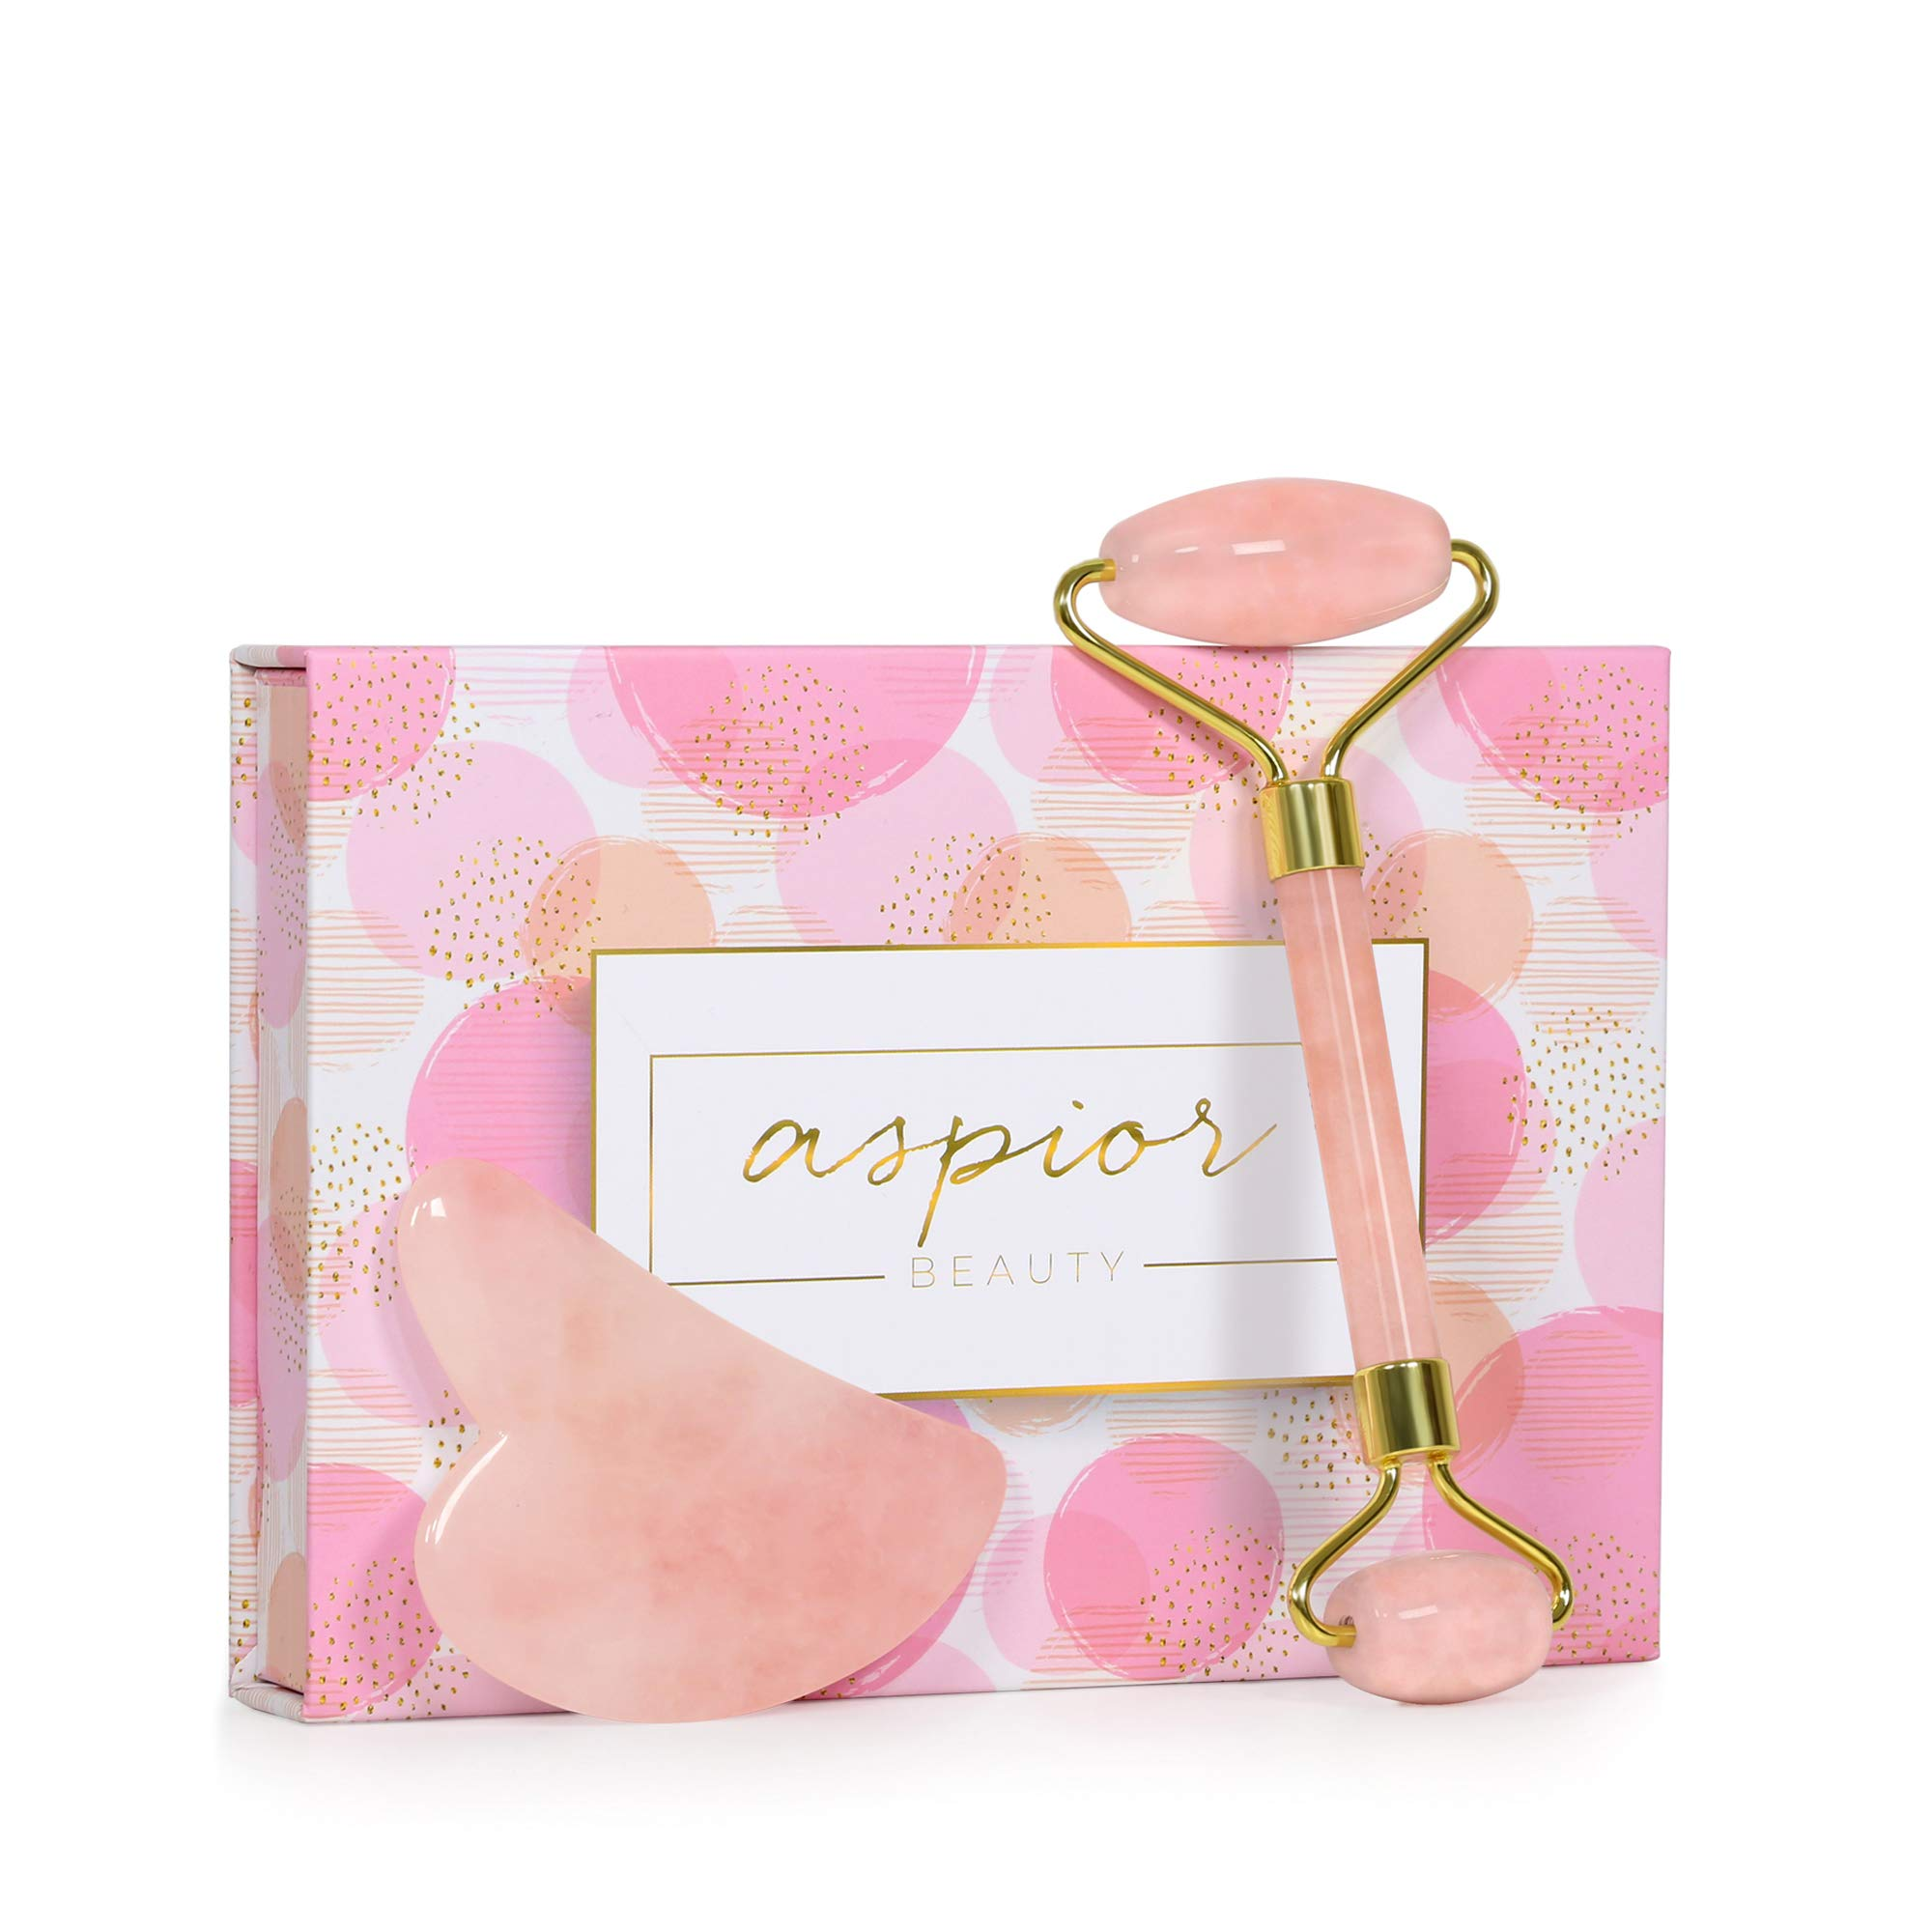 Aspior Jade face roller rose quartz gua sha massage tool Newly Version Natural rejuvenates stone for Anti-face aging neck wrinkgles Checks Eyes slimmer tightening with Gift Box Set (pink)